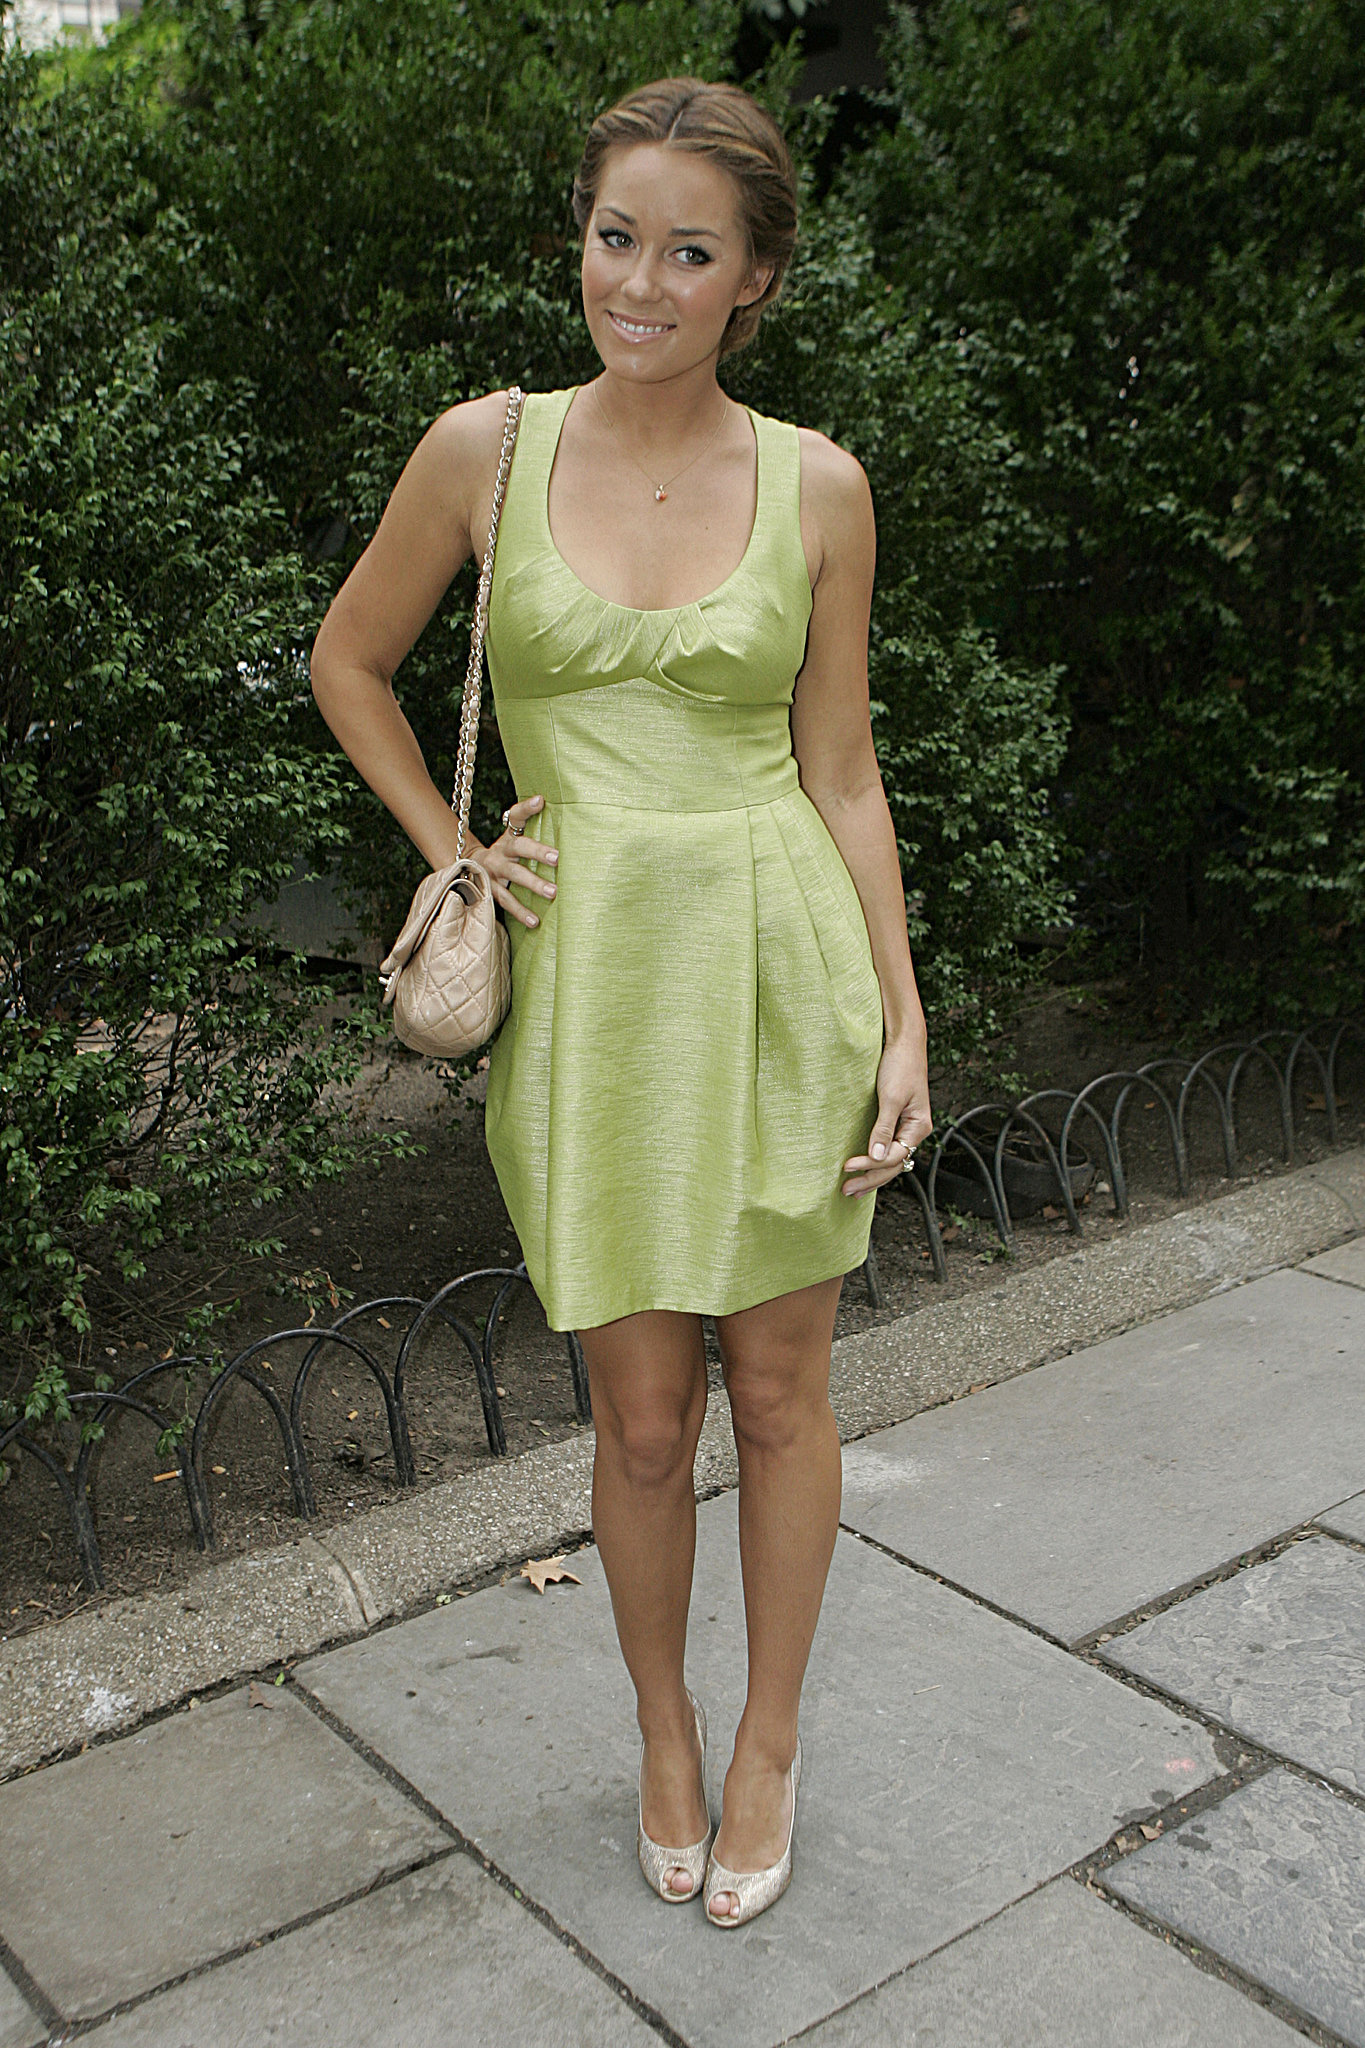 LC attended New York Fashion Week in a mint green dress in 2009. Lesson from Lauren: pastels play up a sun-kissed glow.